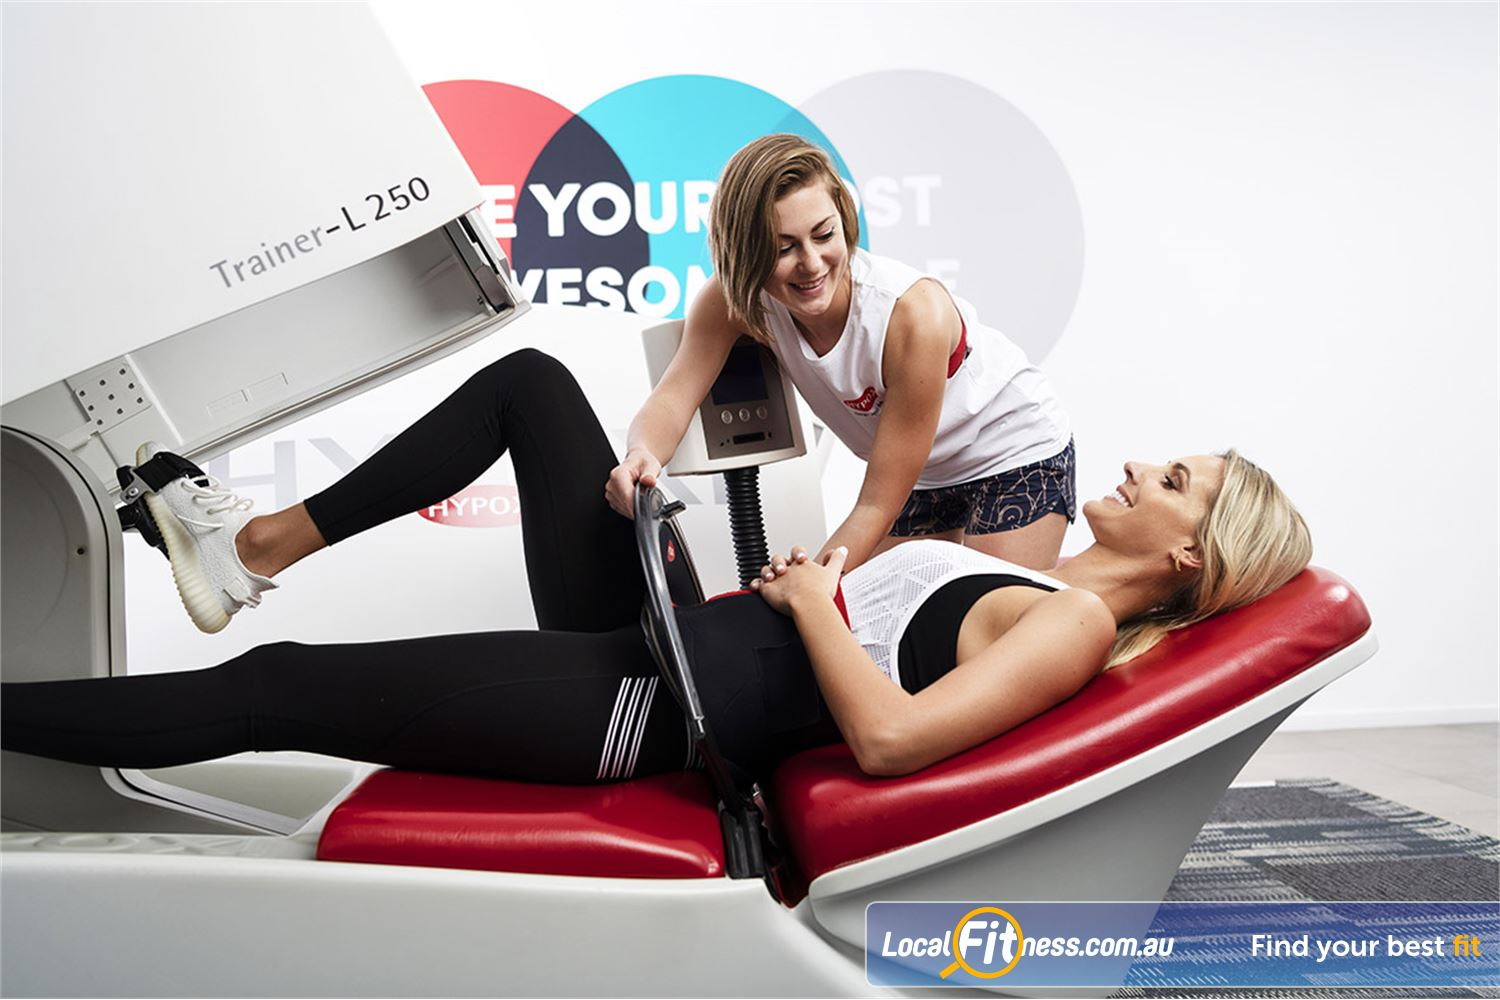 HYPOXI Weight Loss Newtown For women HYPOXI is great for Newtown cellulite reduction.